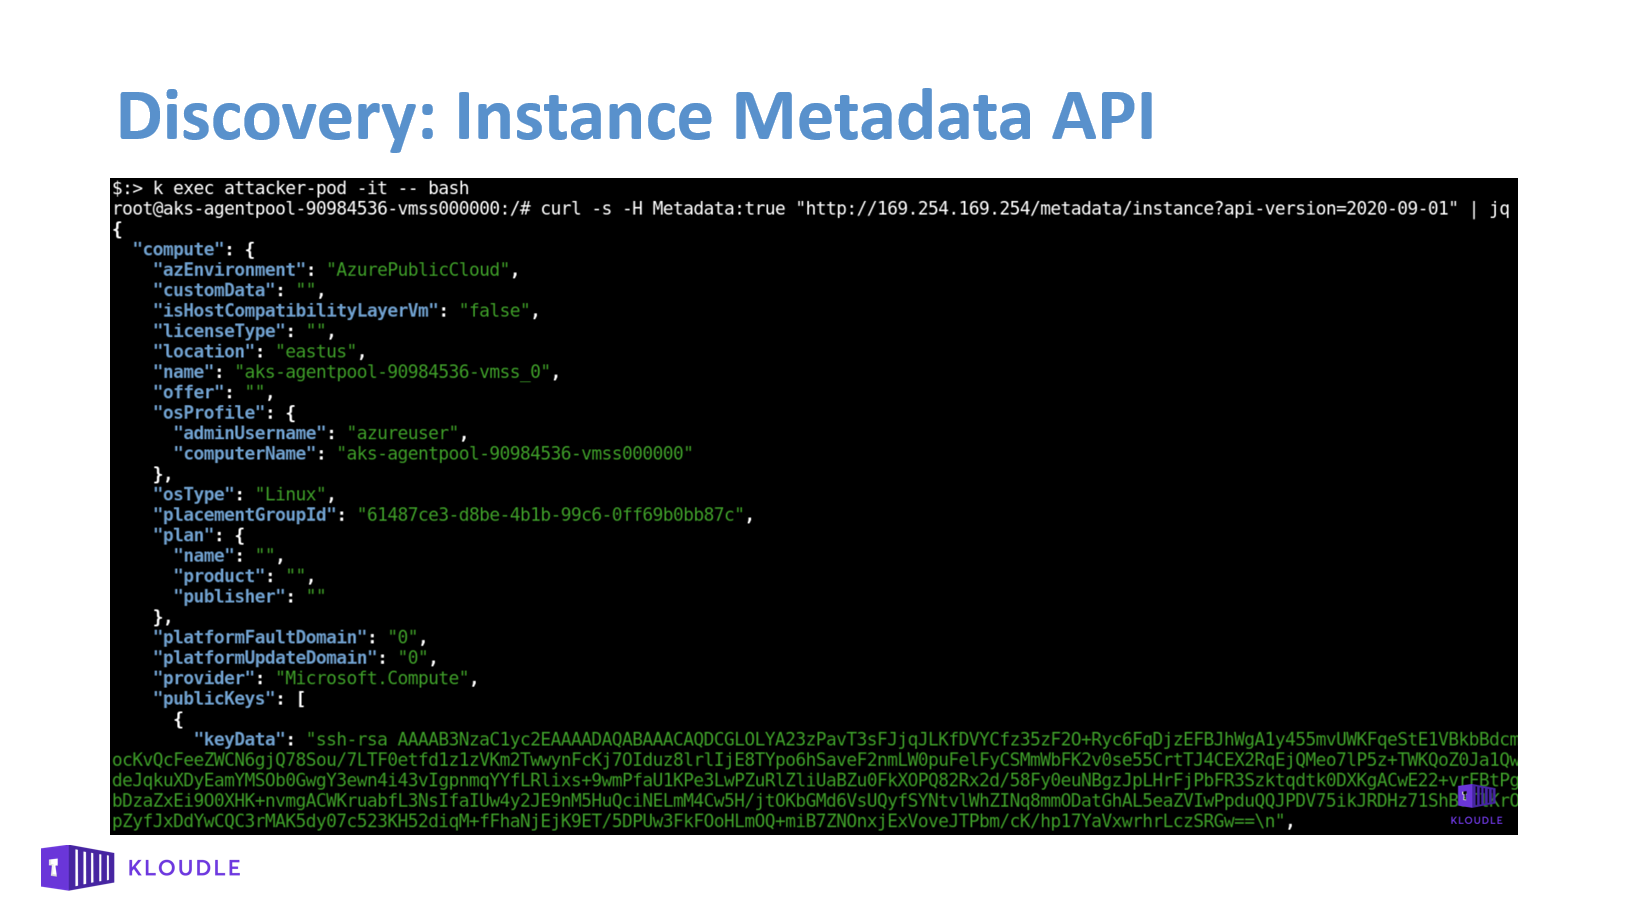 Discovery Instance metadata API endpoint